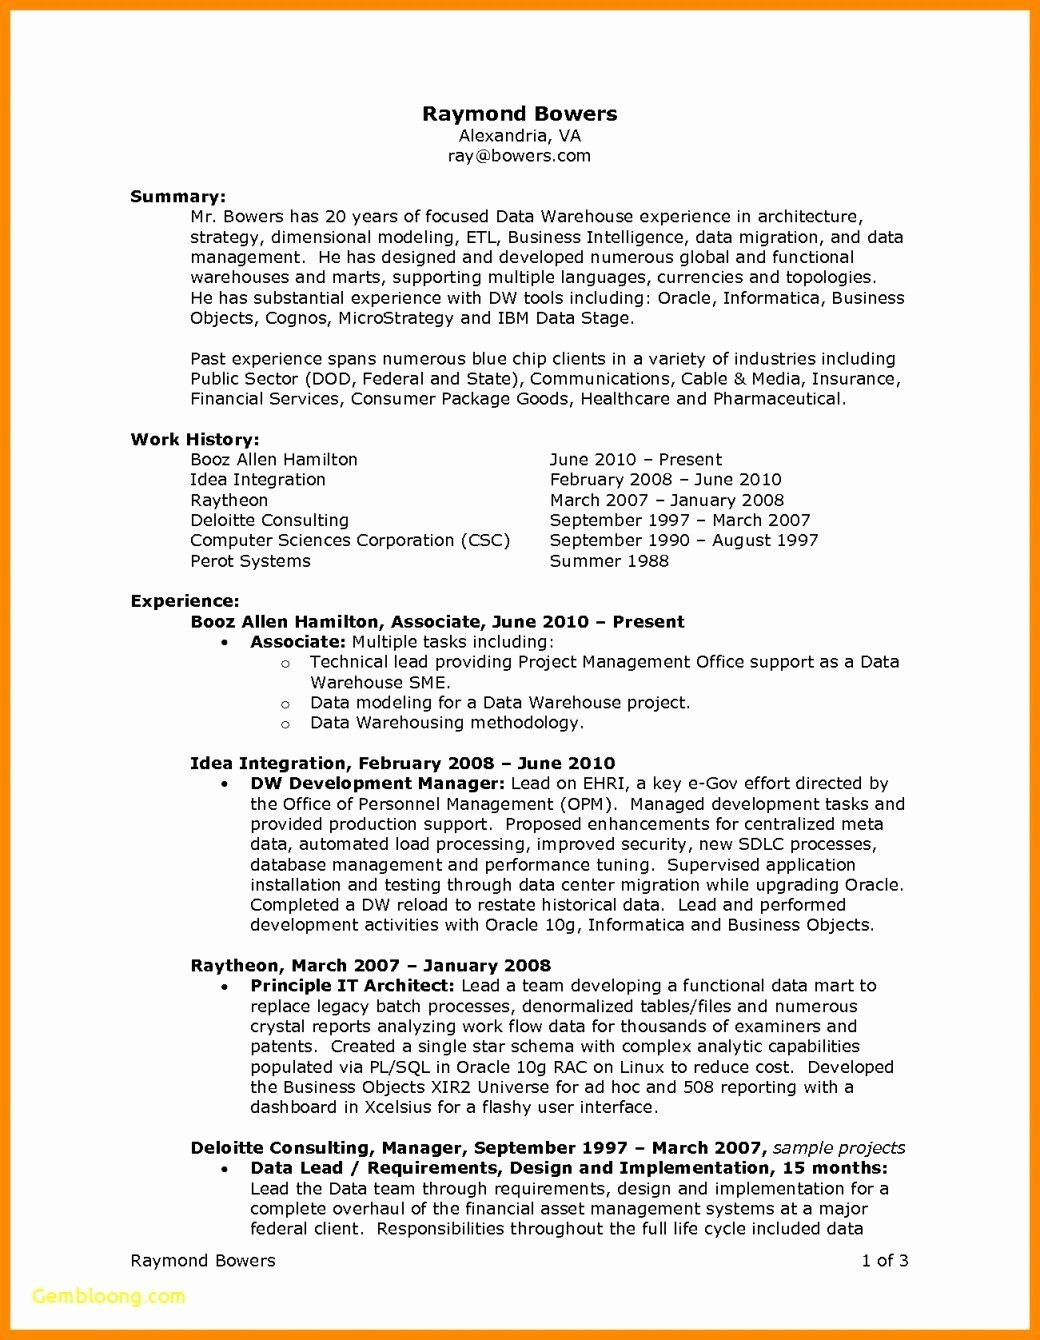 Letter Of Financial Responsibility Template New 16 Letter Financial Responsibility Template Ideas Resume Examples Mission Statement Examples Job Resume